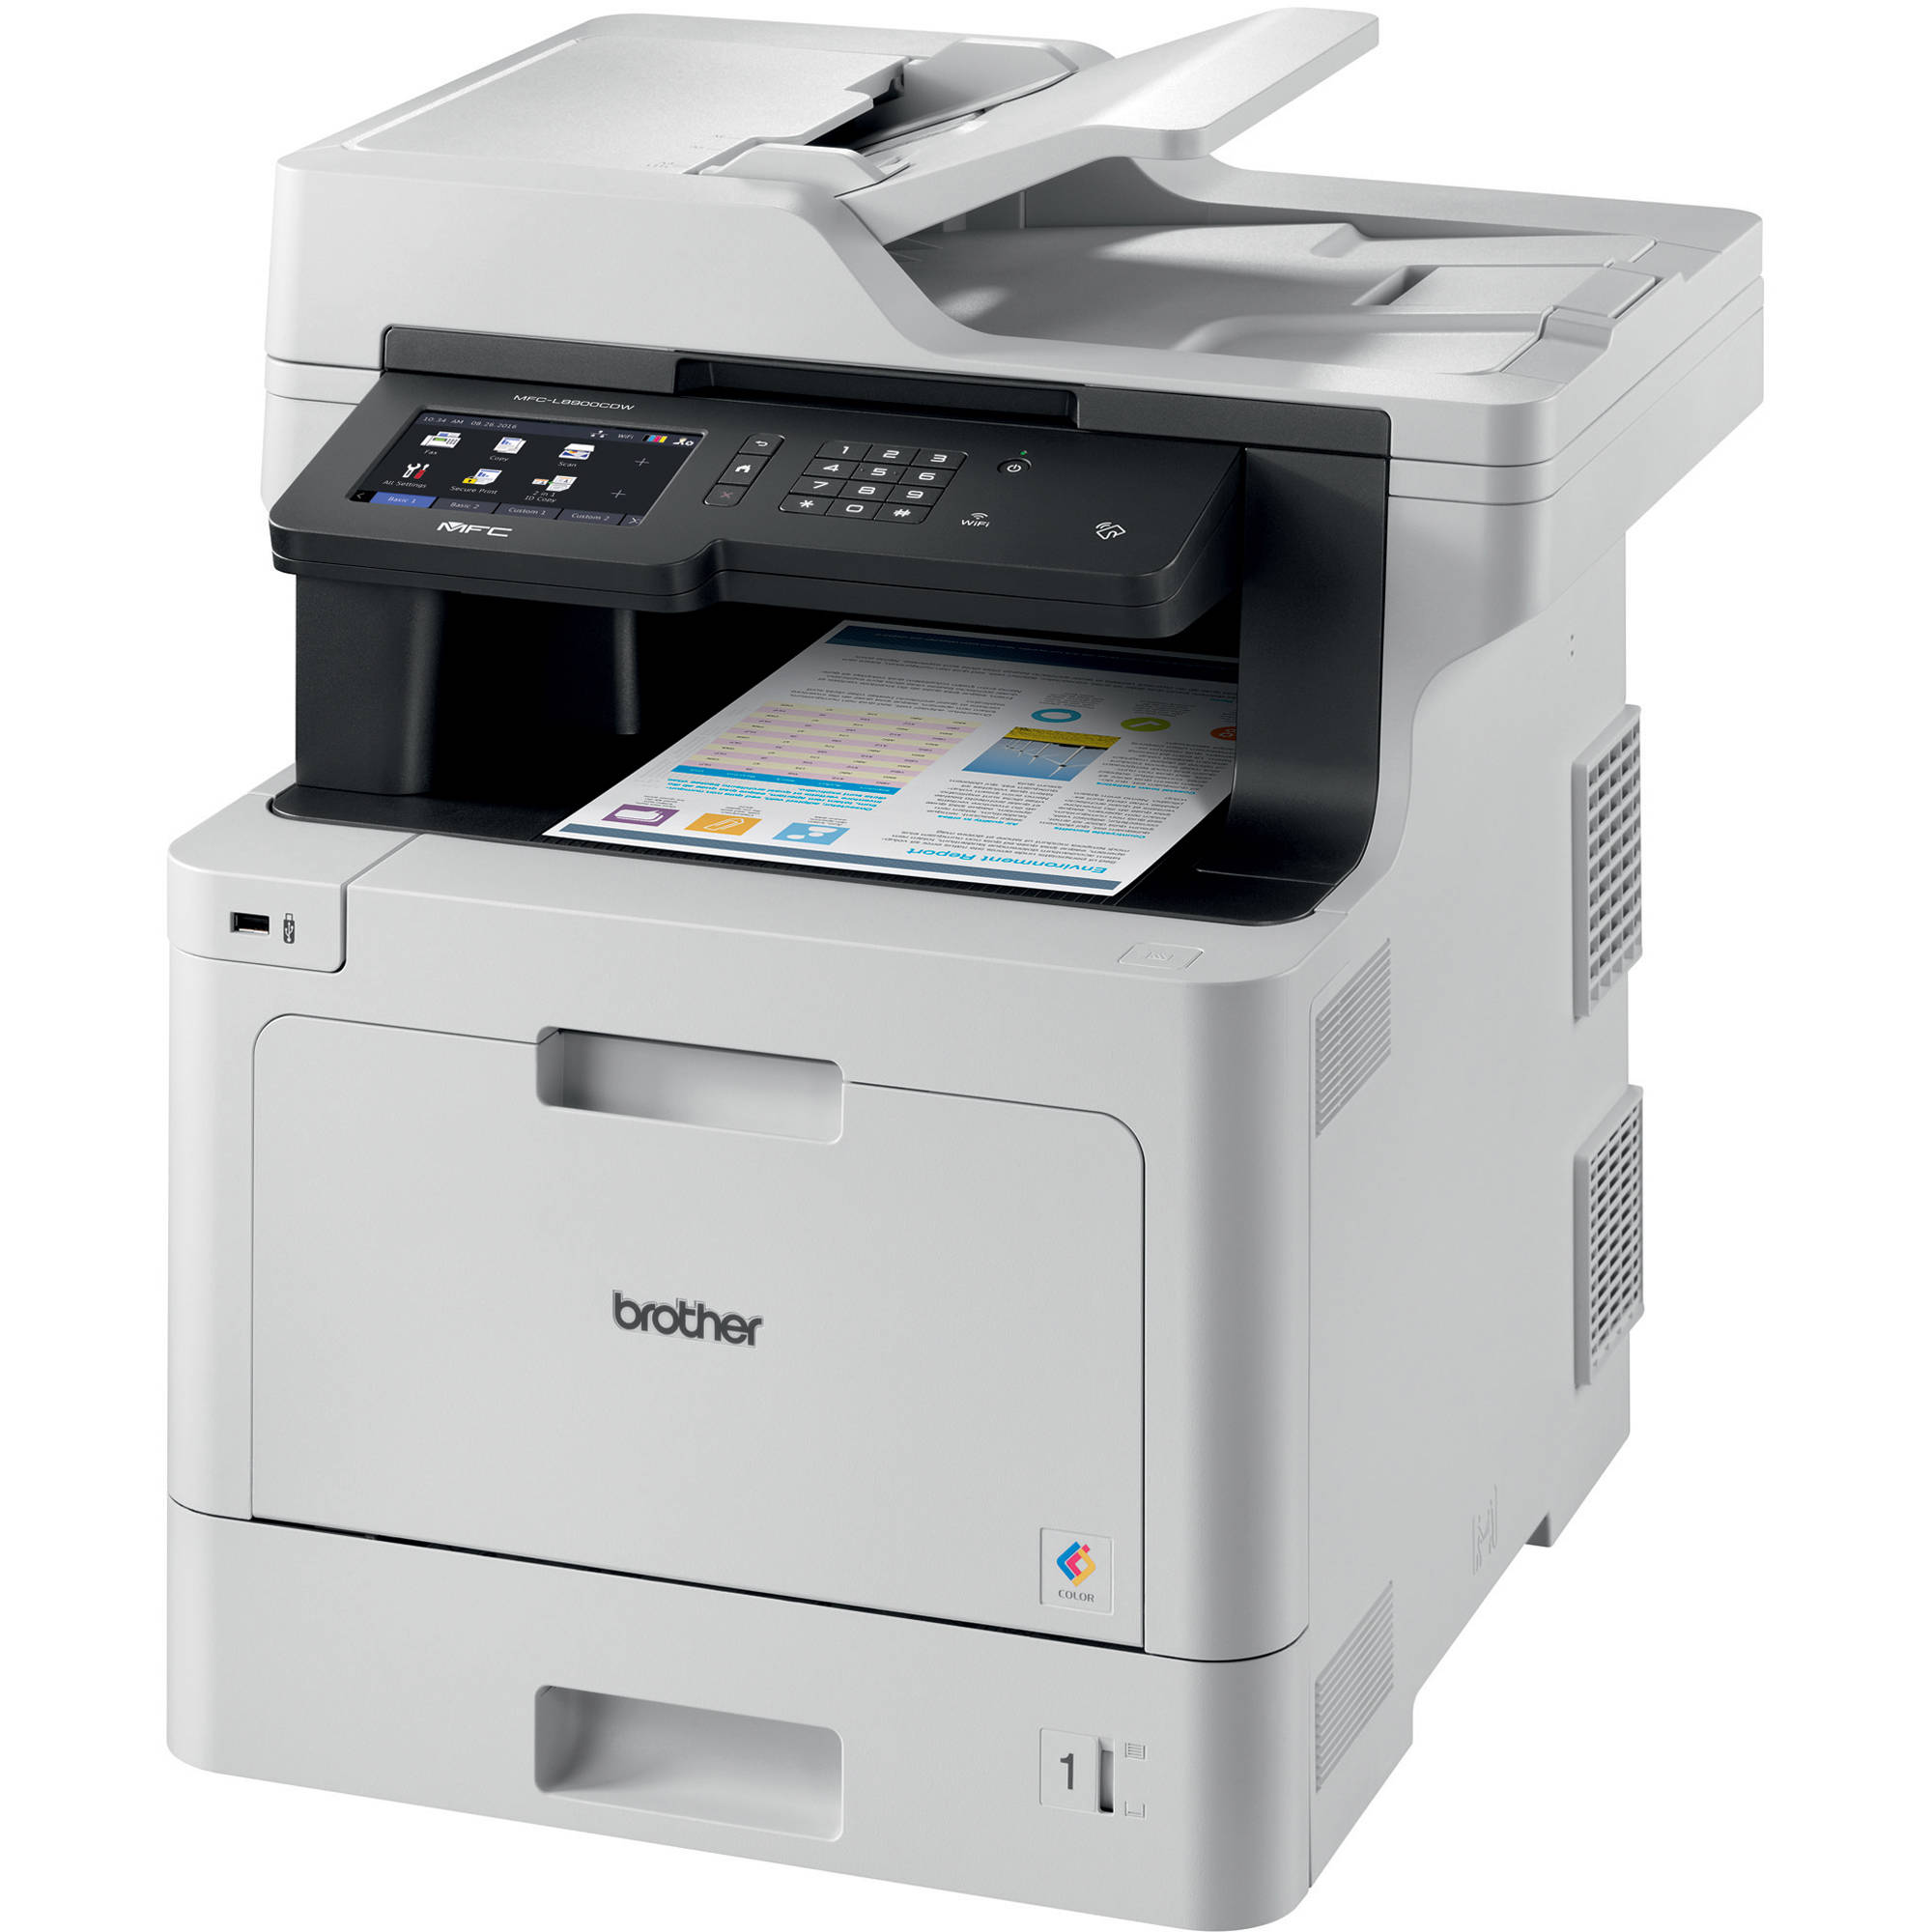 Best All In One Color Laser Printer 2020.Brother Mfc L8900cdw All In One Color Laser Printer